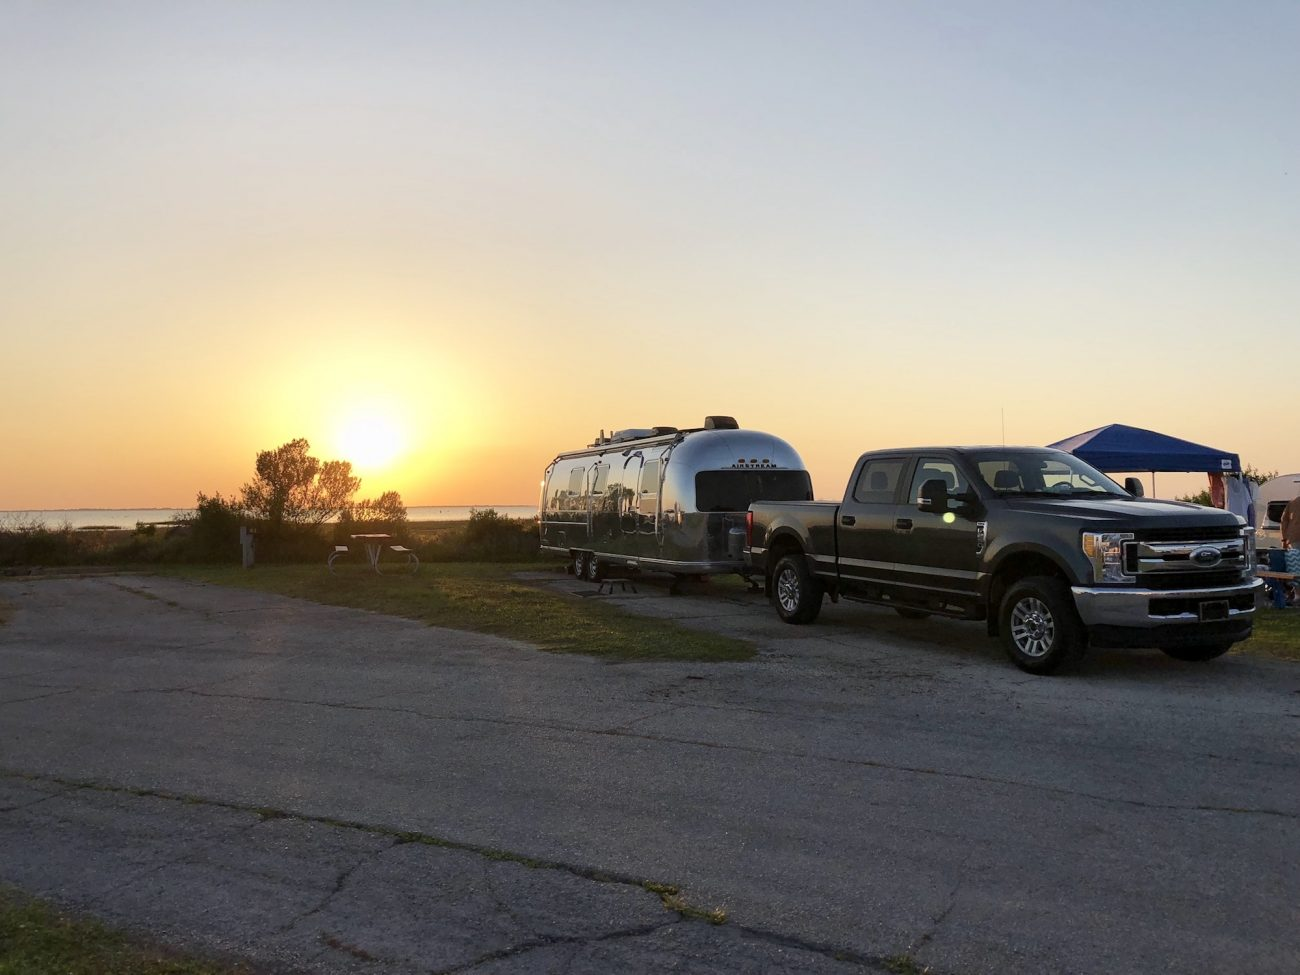 Sun goes down behind Airstream and Truck